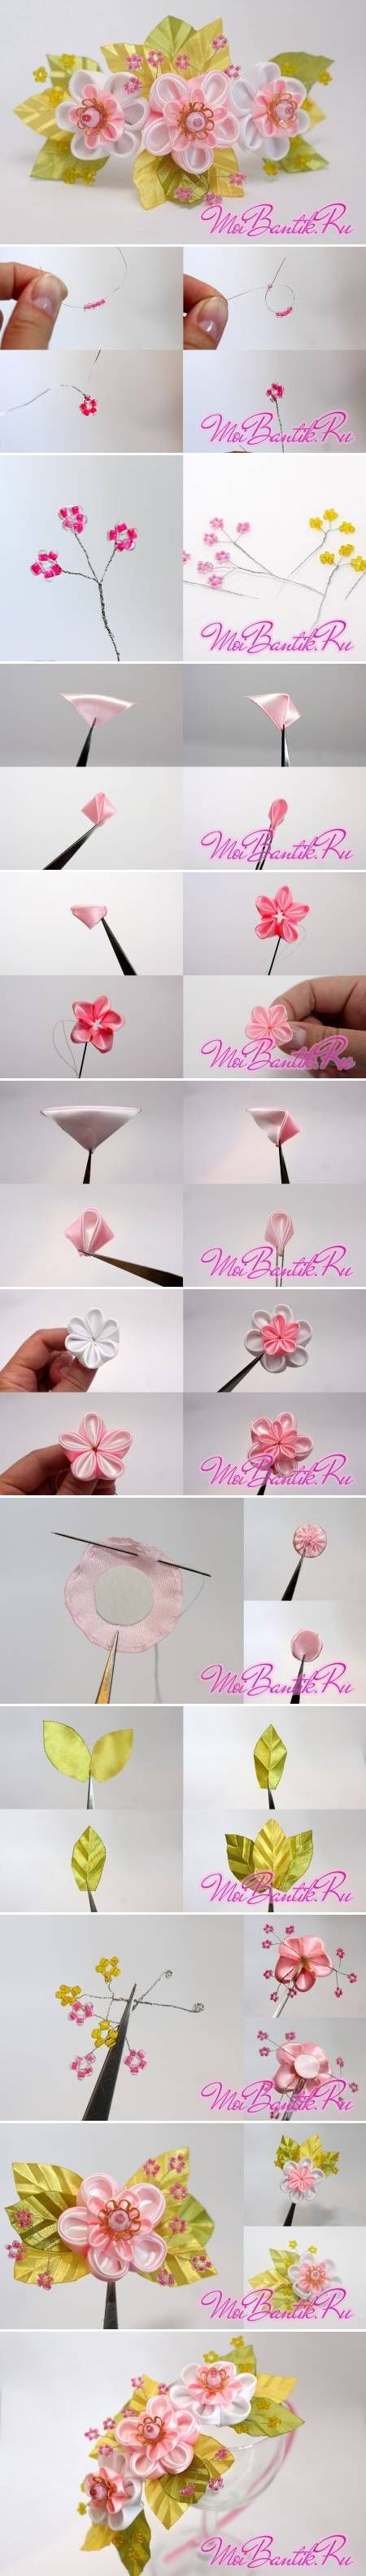 How to Make Golden Sakura Ribbon Flowers step by step DIY tutorial instructions How to Make Golden Sakura Ribbon Flowers step by step DIY tu...